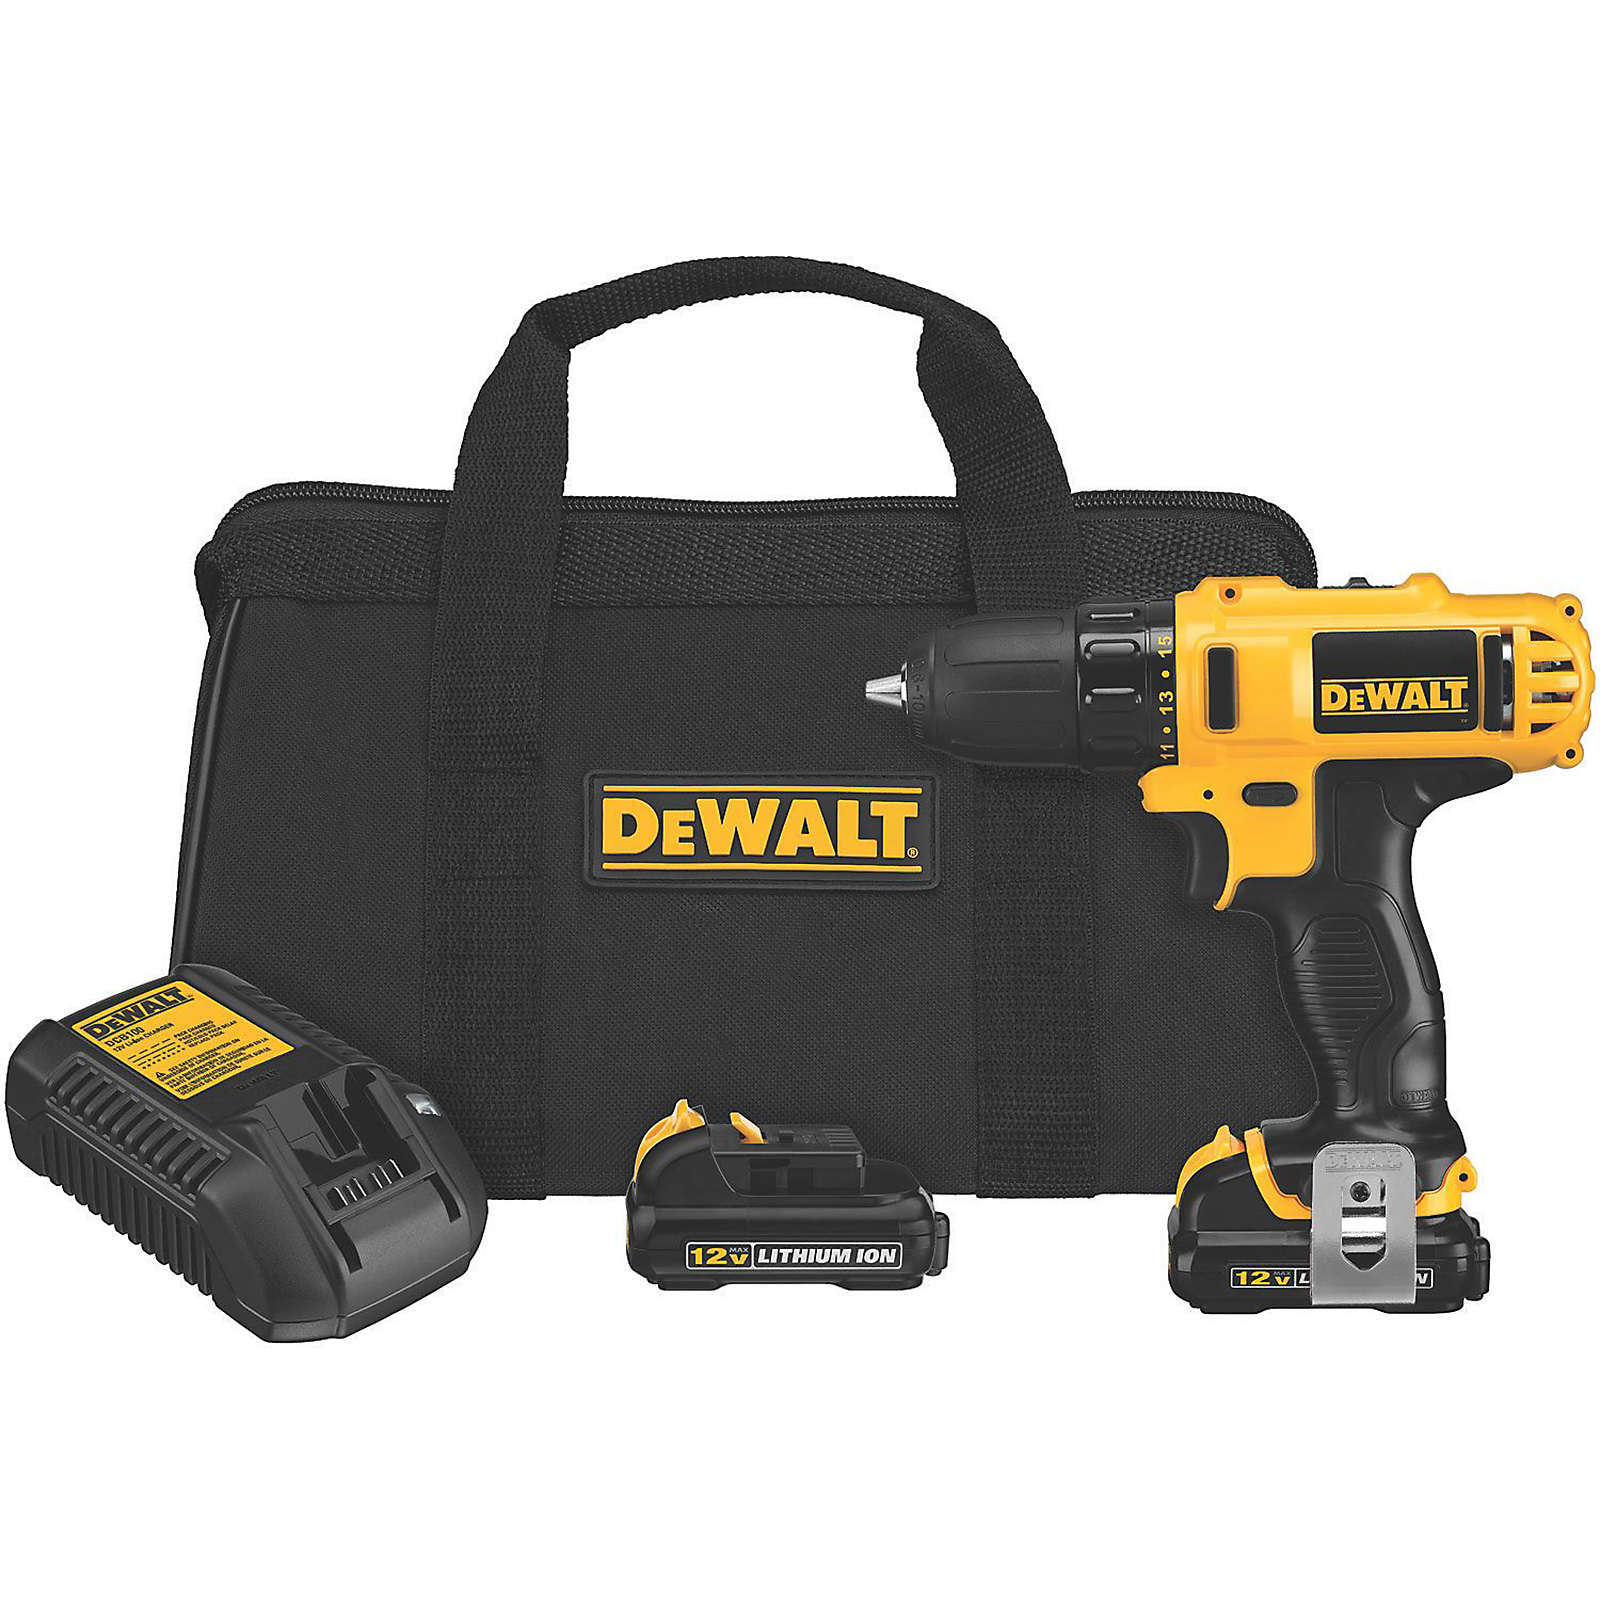 DeWalt 12V MAX* 3/8 in. Drill Driver Kit